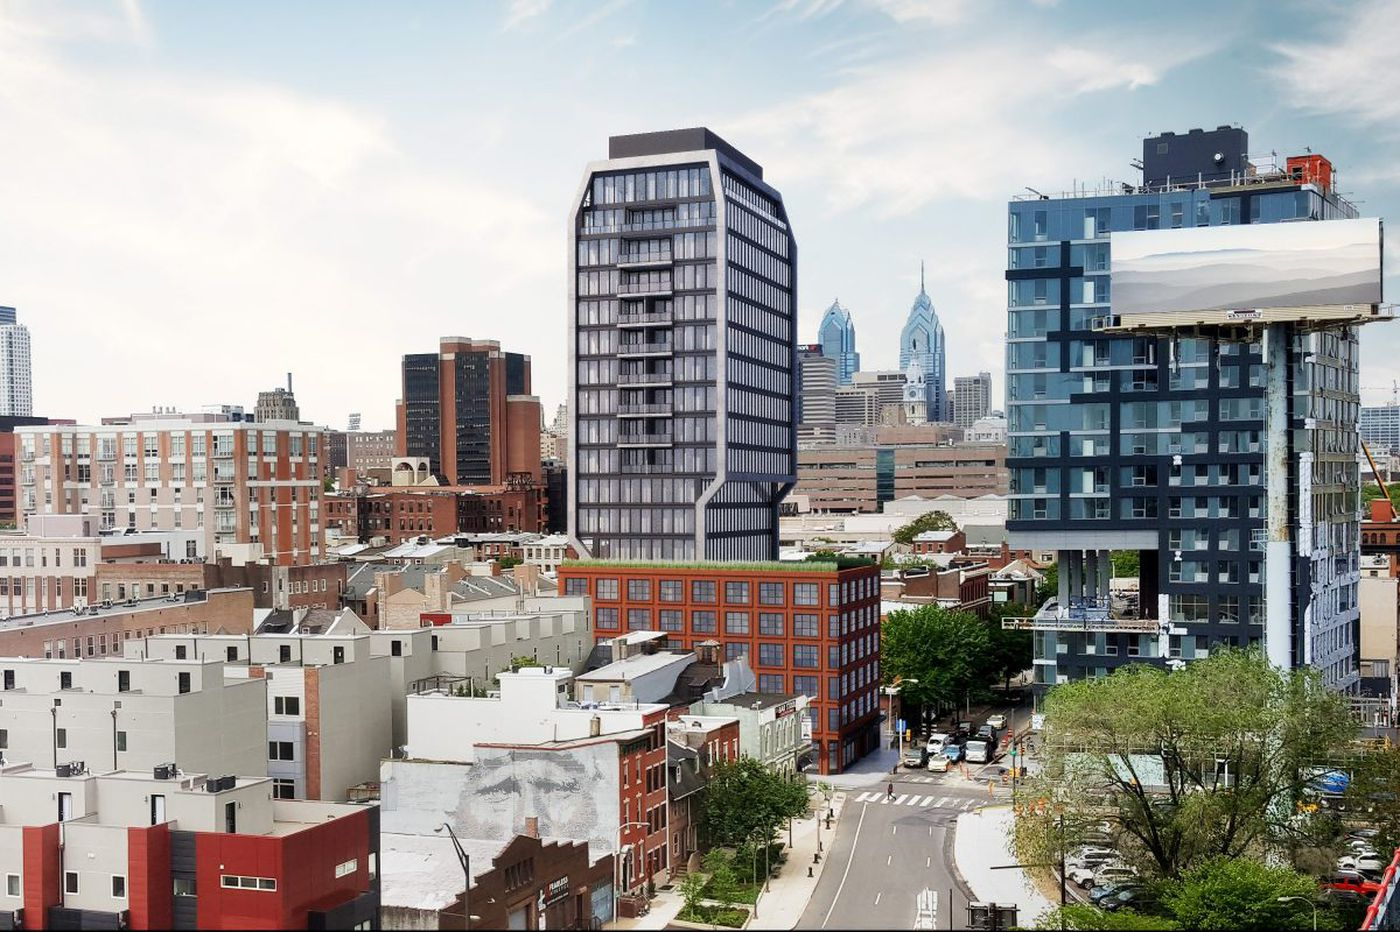 Hotel-condo hybrid tower planned for corner in Old City restaurant-supply row